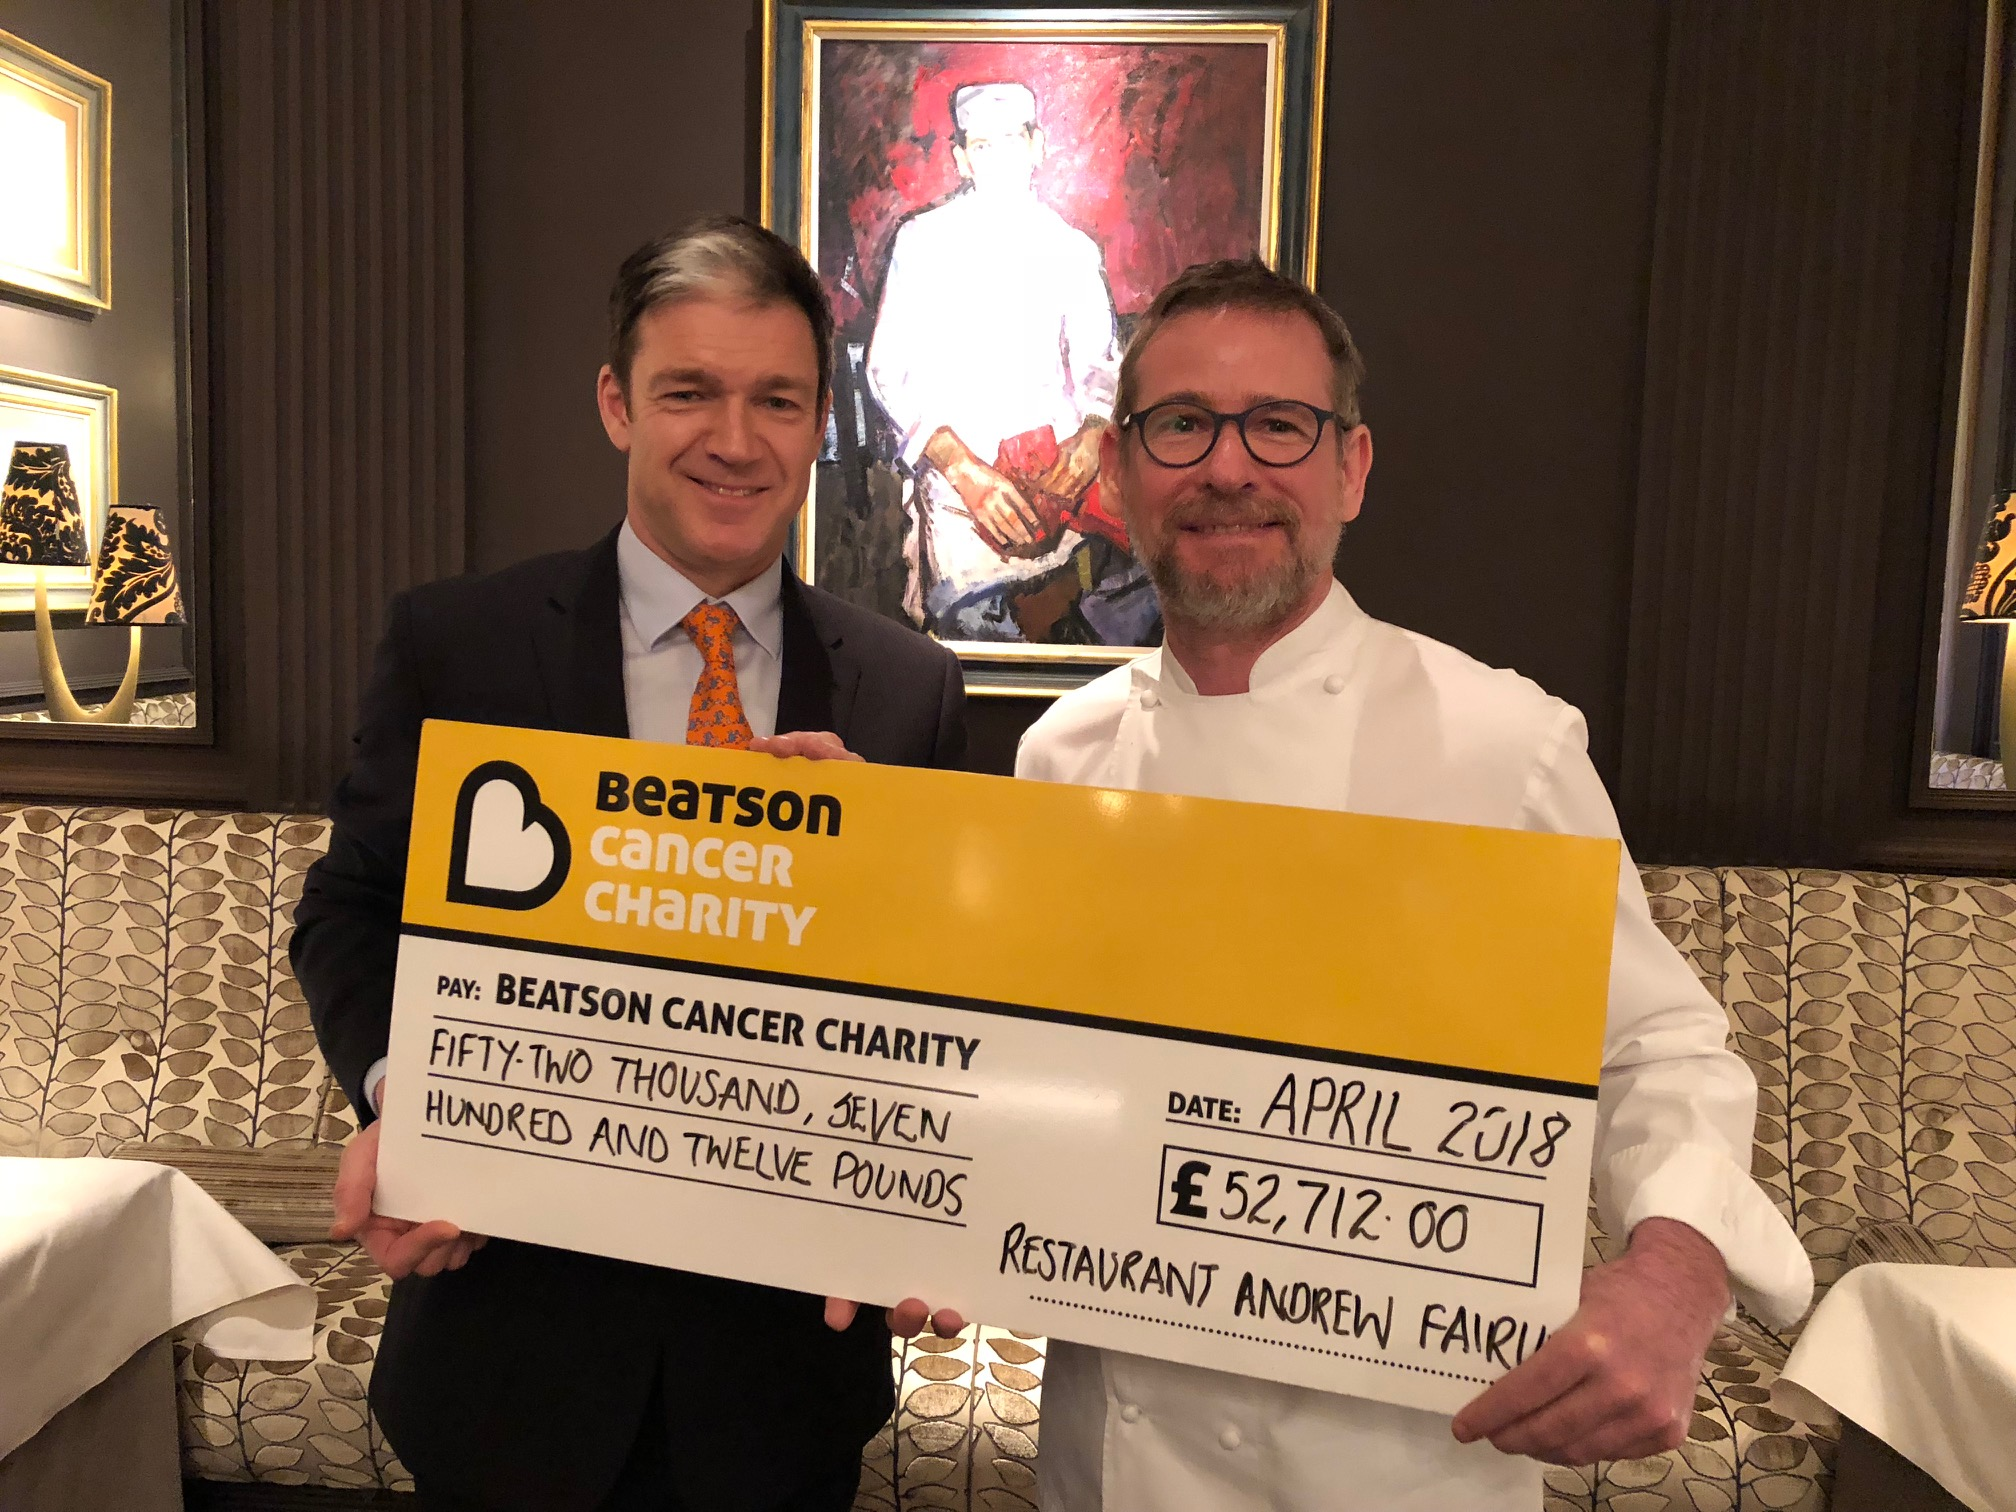 Chef Andrew Fairlie with Graham Souter, Chief Executive of the Beatson Cancer Charity